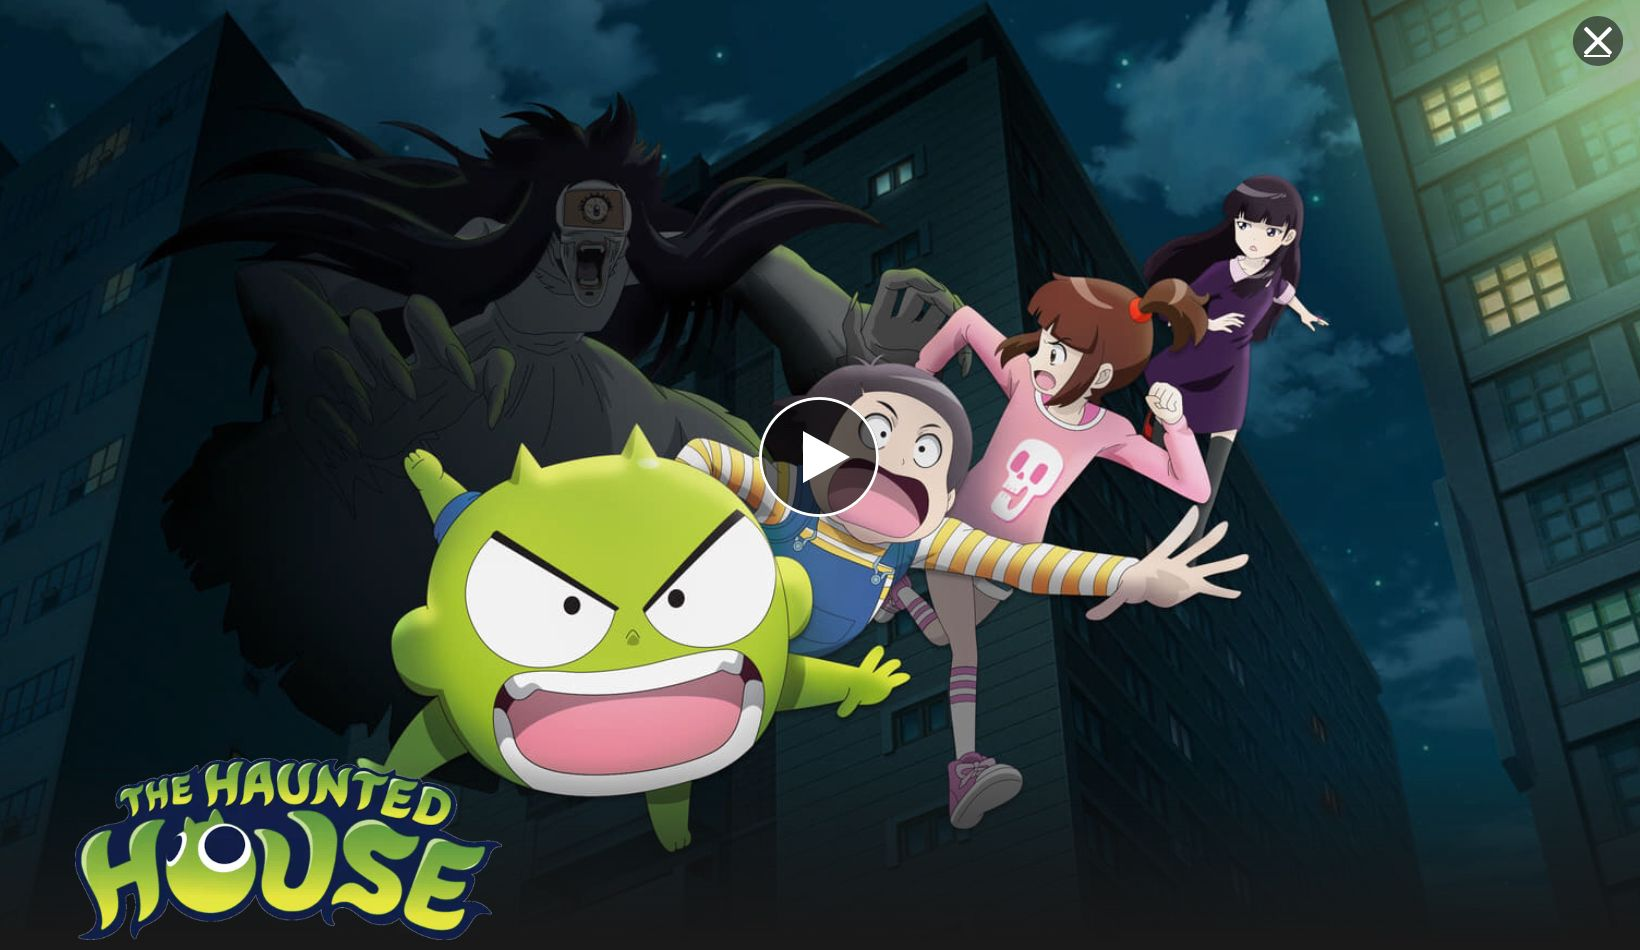 Watch The Haunted House on Netflix! It's a great Anime! My